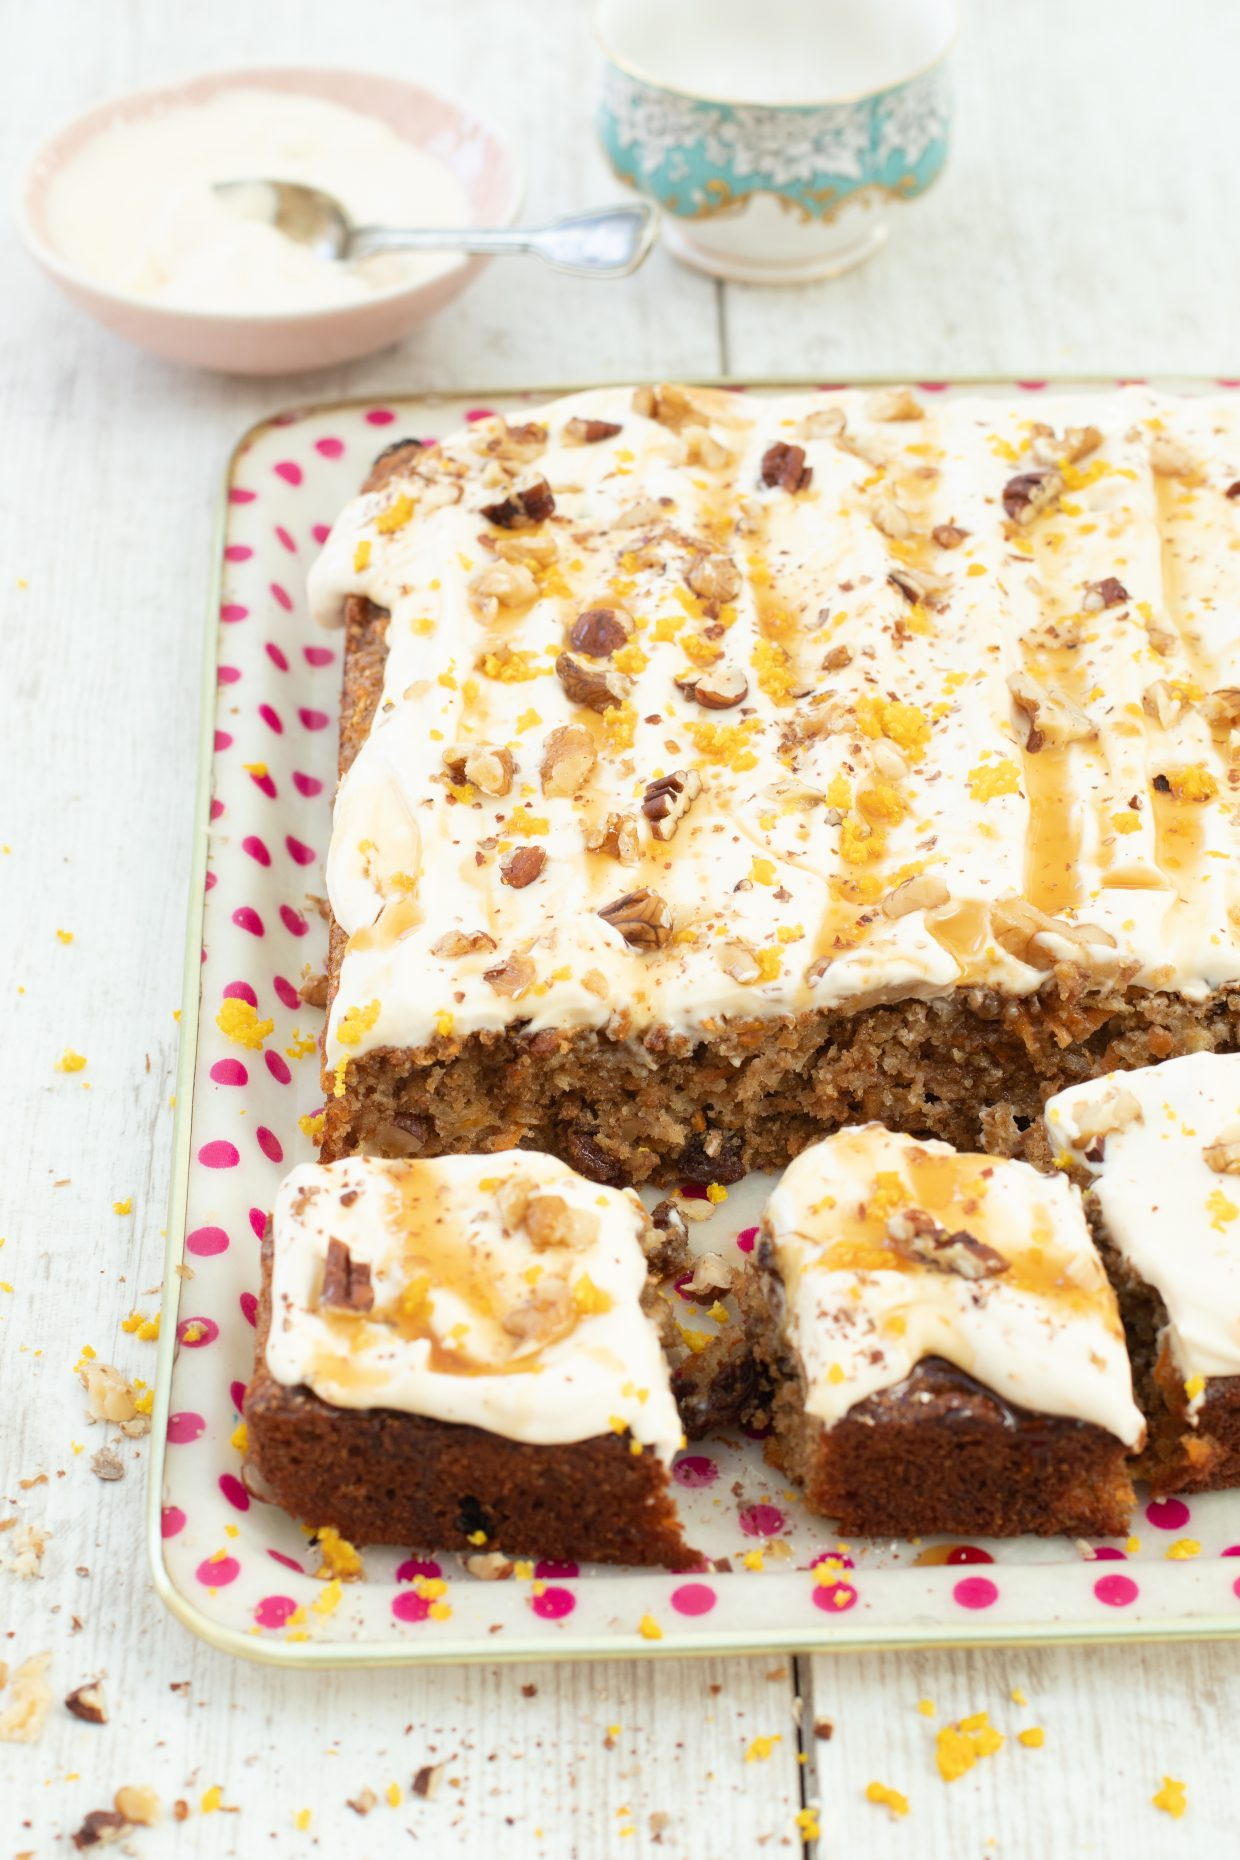 Carrot & parsnip tray bake cake with cream cheese & maple frosting